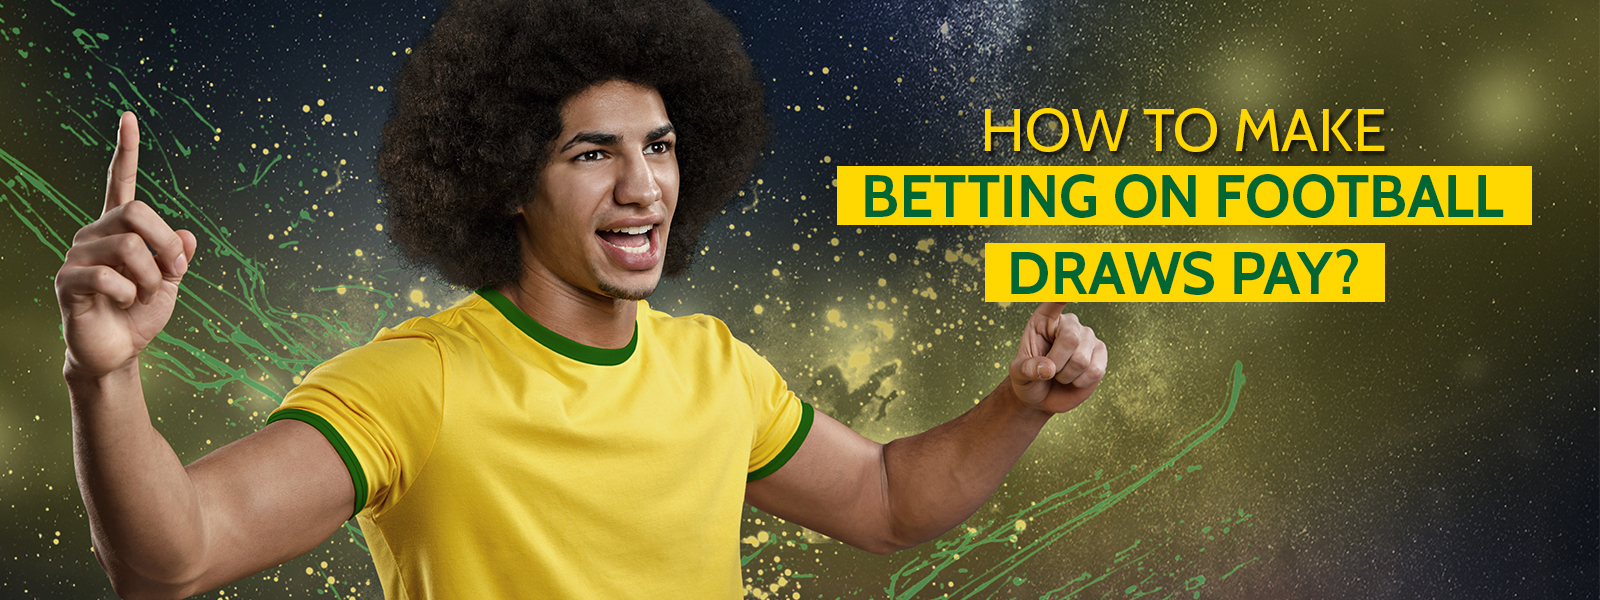 How To Make Betting On Football Draws Pay